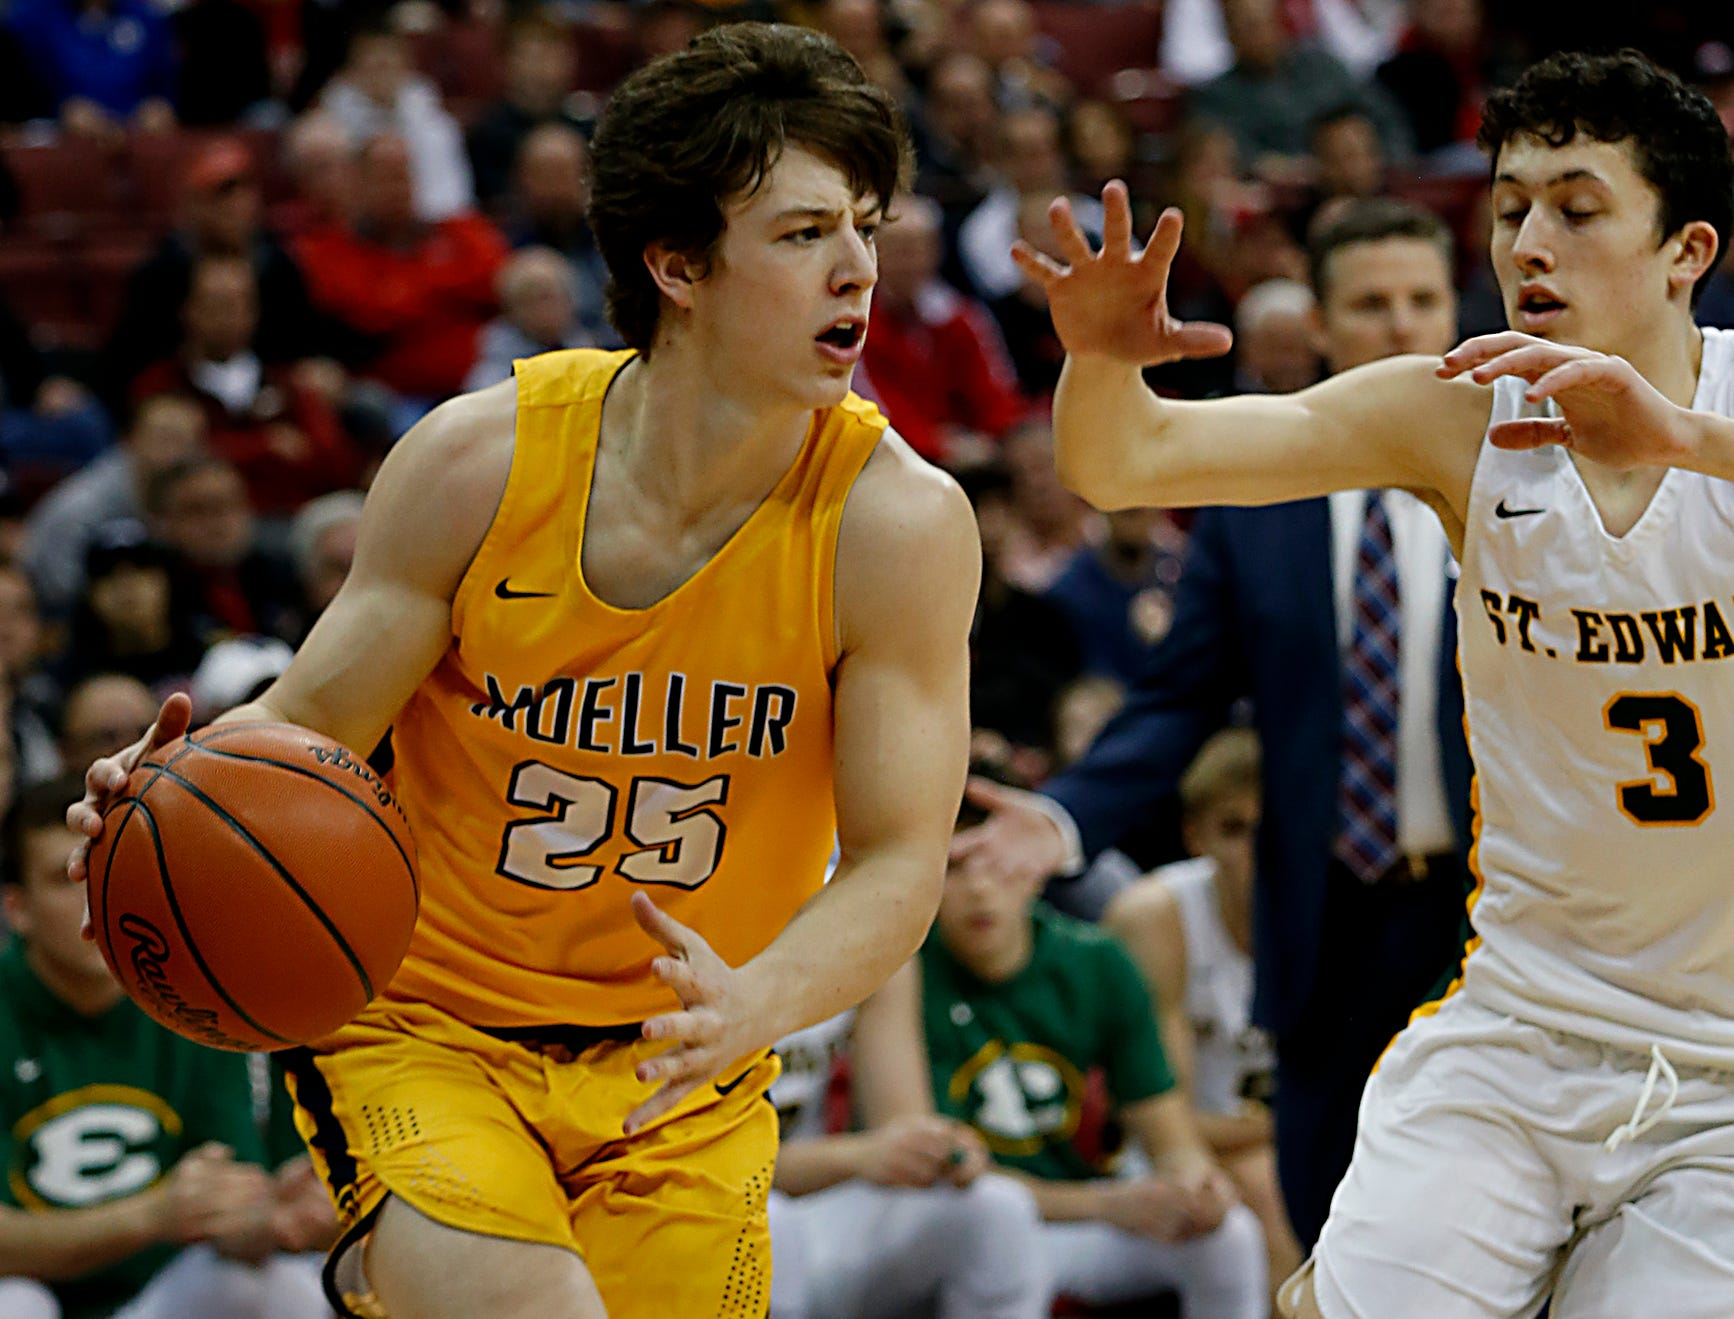 Moeller forward Michael Currin drives against St. Edward guard Josh Ogle during their Division I semifinal at the Schottenstein Center in Columbus Friday, March 22, 2019.